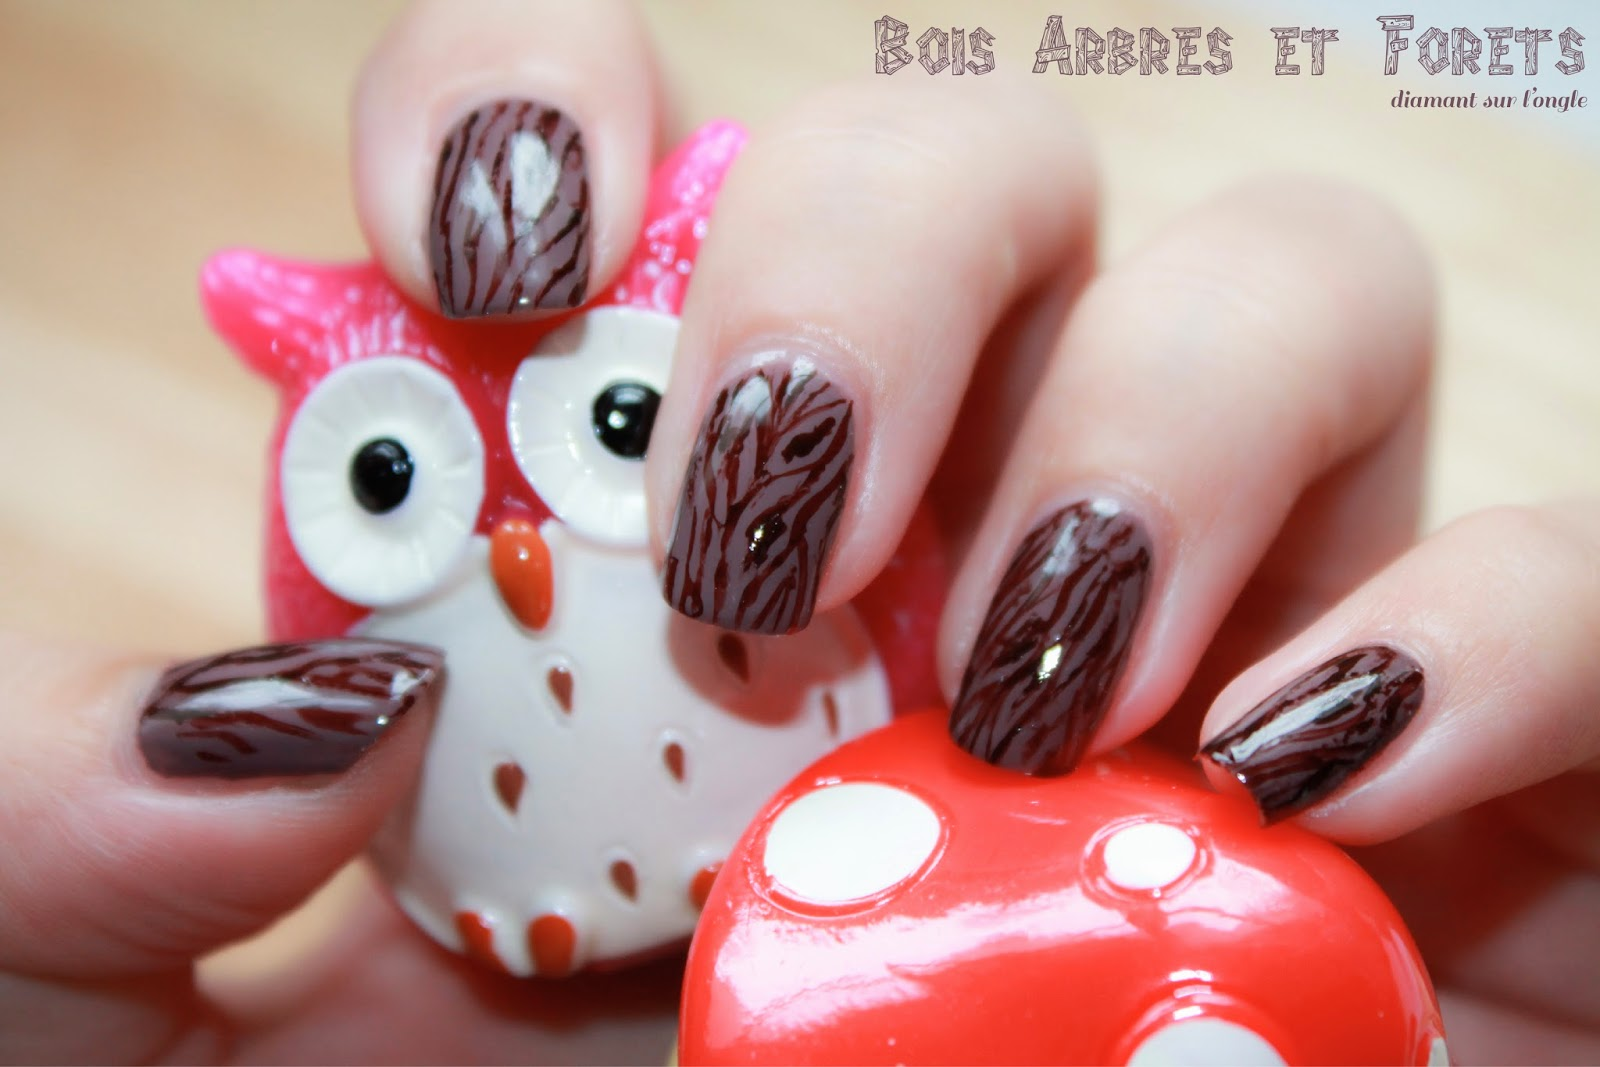 http://diamantsurlongle.blogspot.fr/2013/09/nailstorming-des-ongles-en-bois.html